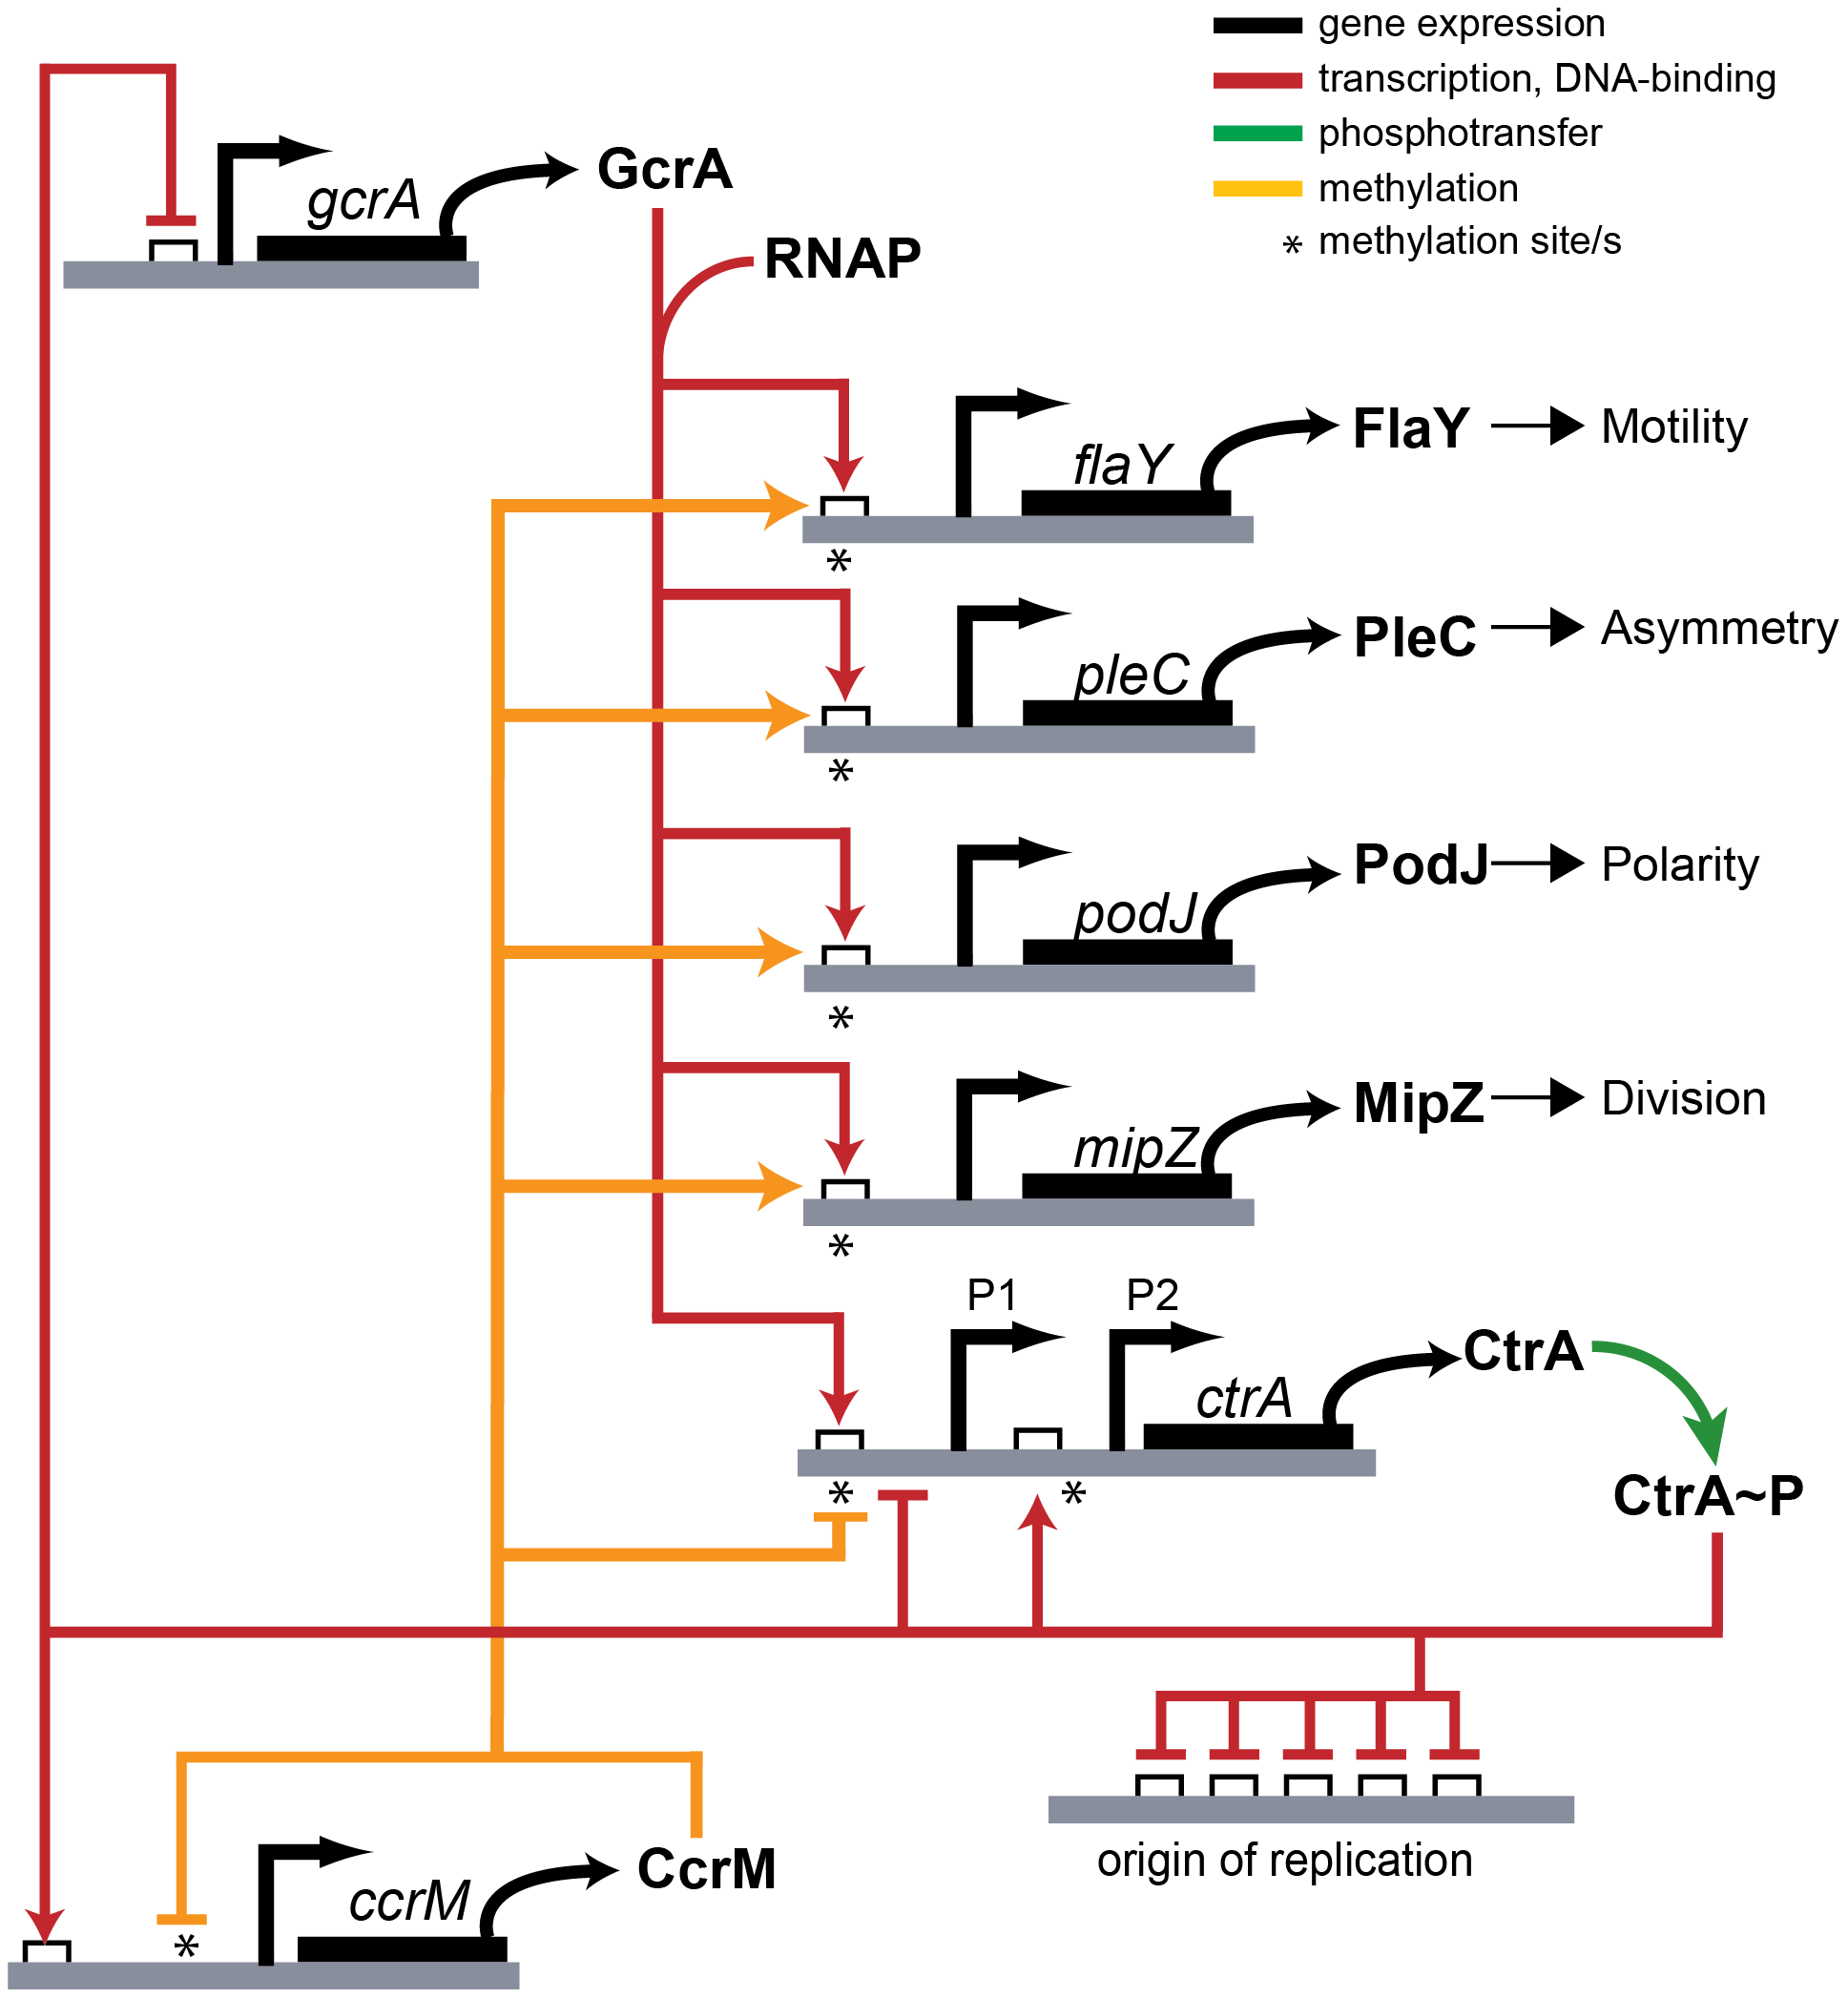 Model of transcriptional regulation by GcrA and CcrM.